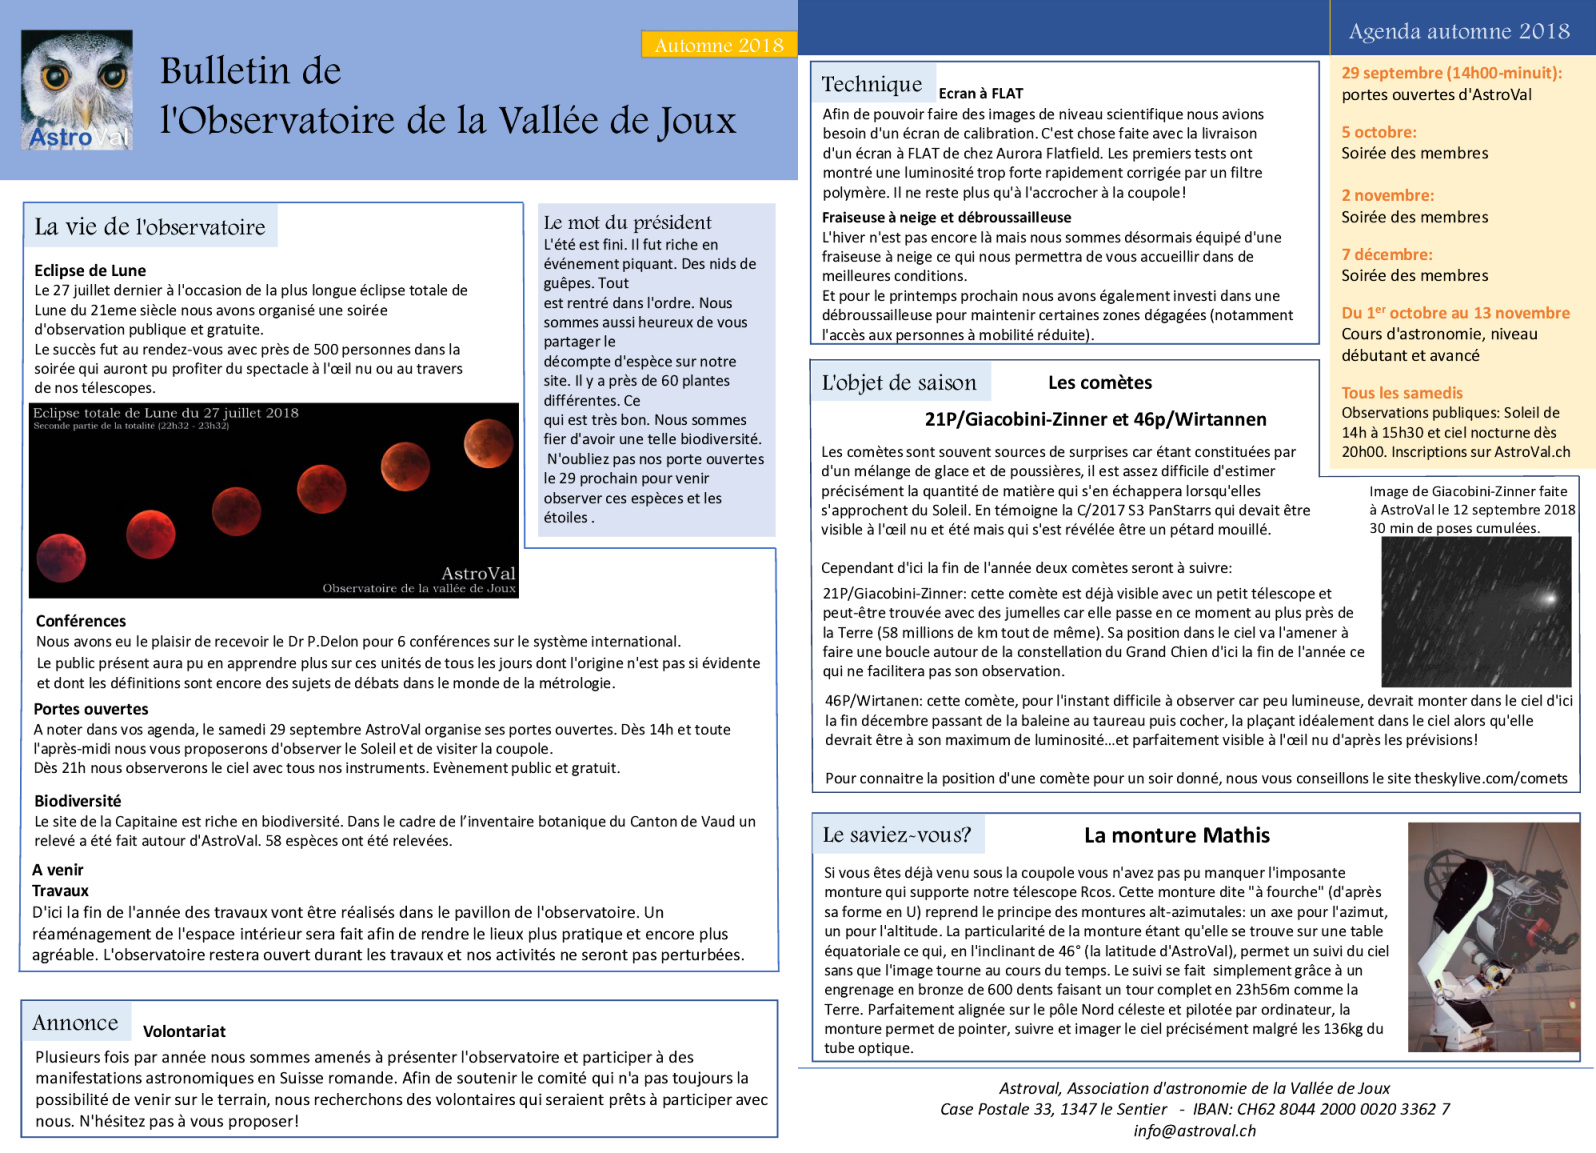 Bulletin AstroVal automne 2018